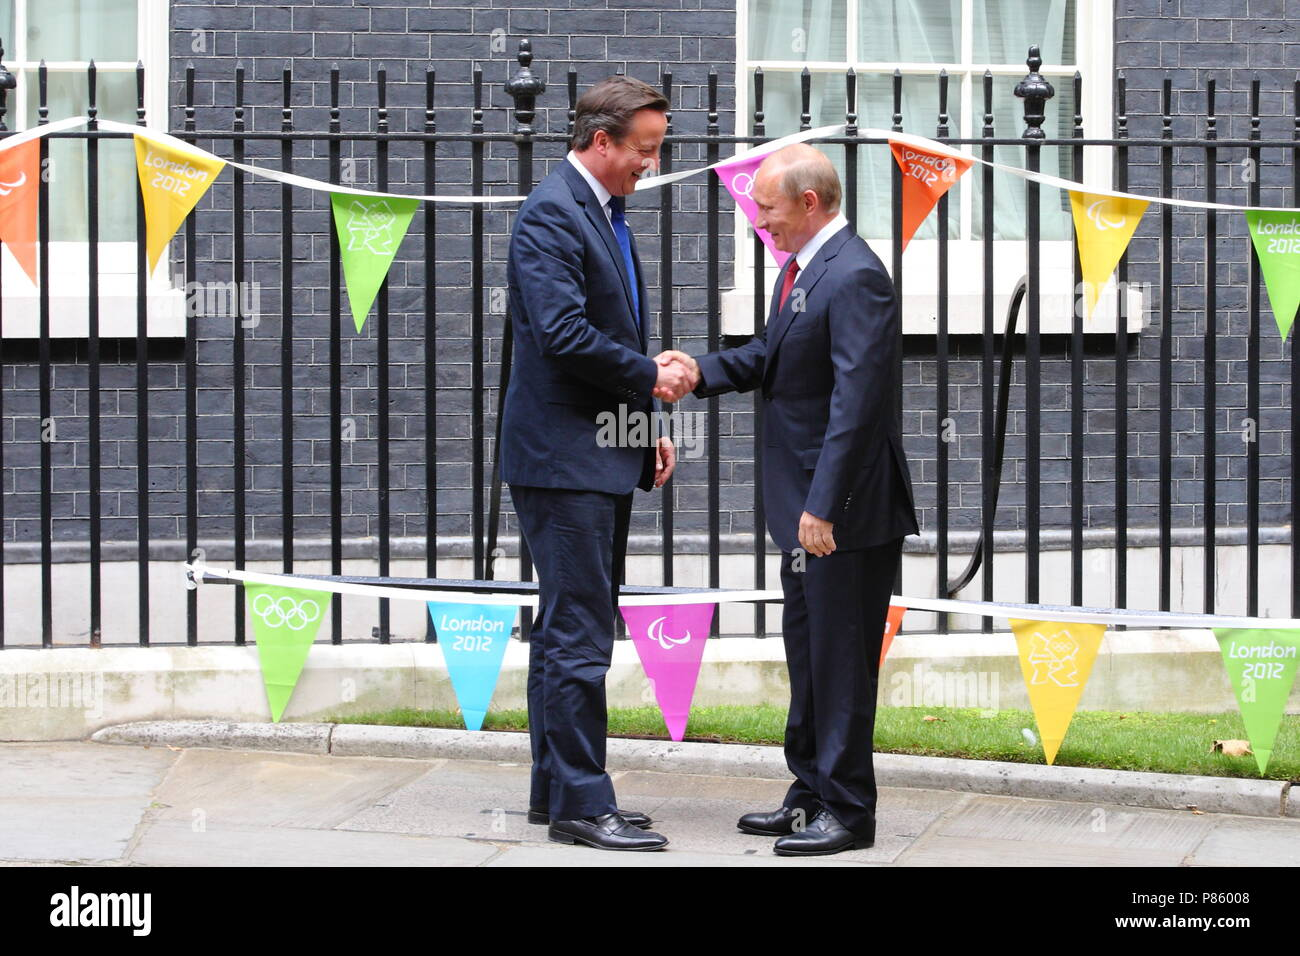 Prime Minister David Cameron meets with the Russian President Vladimir Putin at number 10 Downing Street, the presidents fist visit to the United Kingdom in 9 years. 2 August 2012 --- Image by © Paul Cunningham Stock Photo